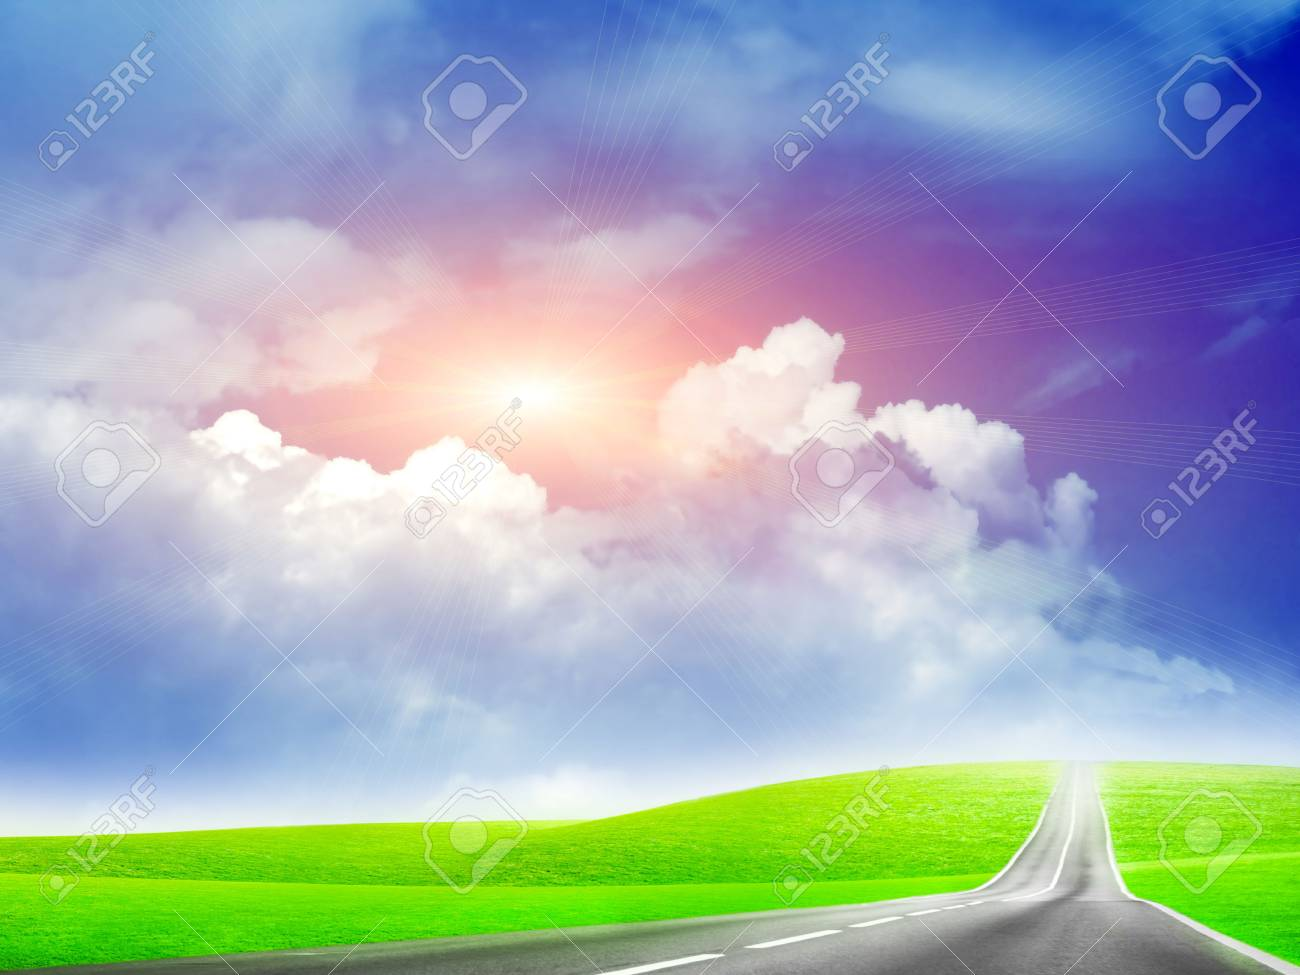 abstract landscape with road and blue sky Stock Photo - 4479849